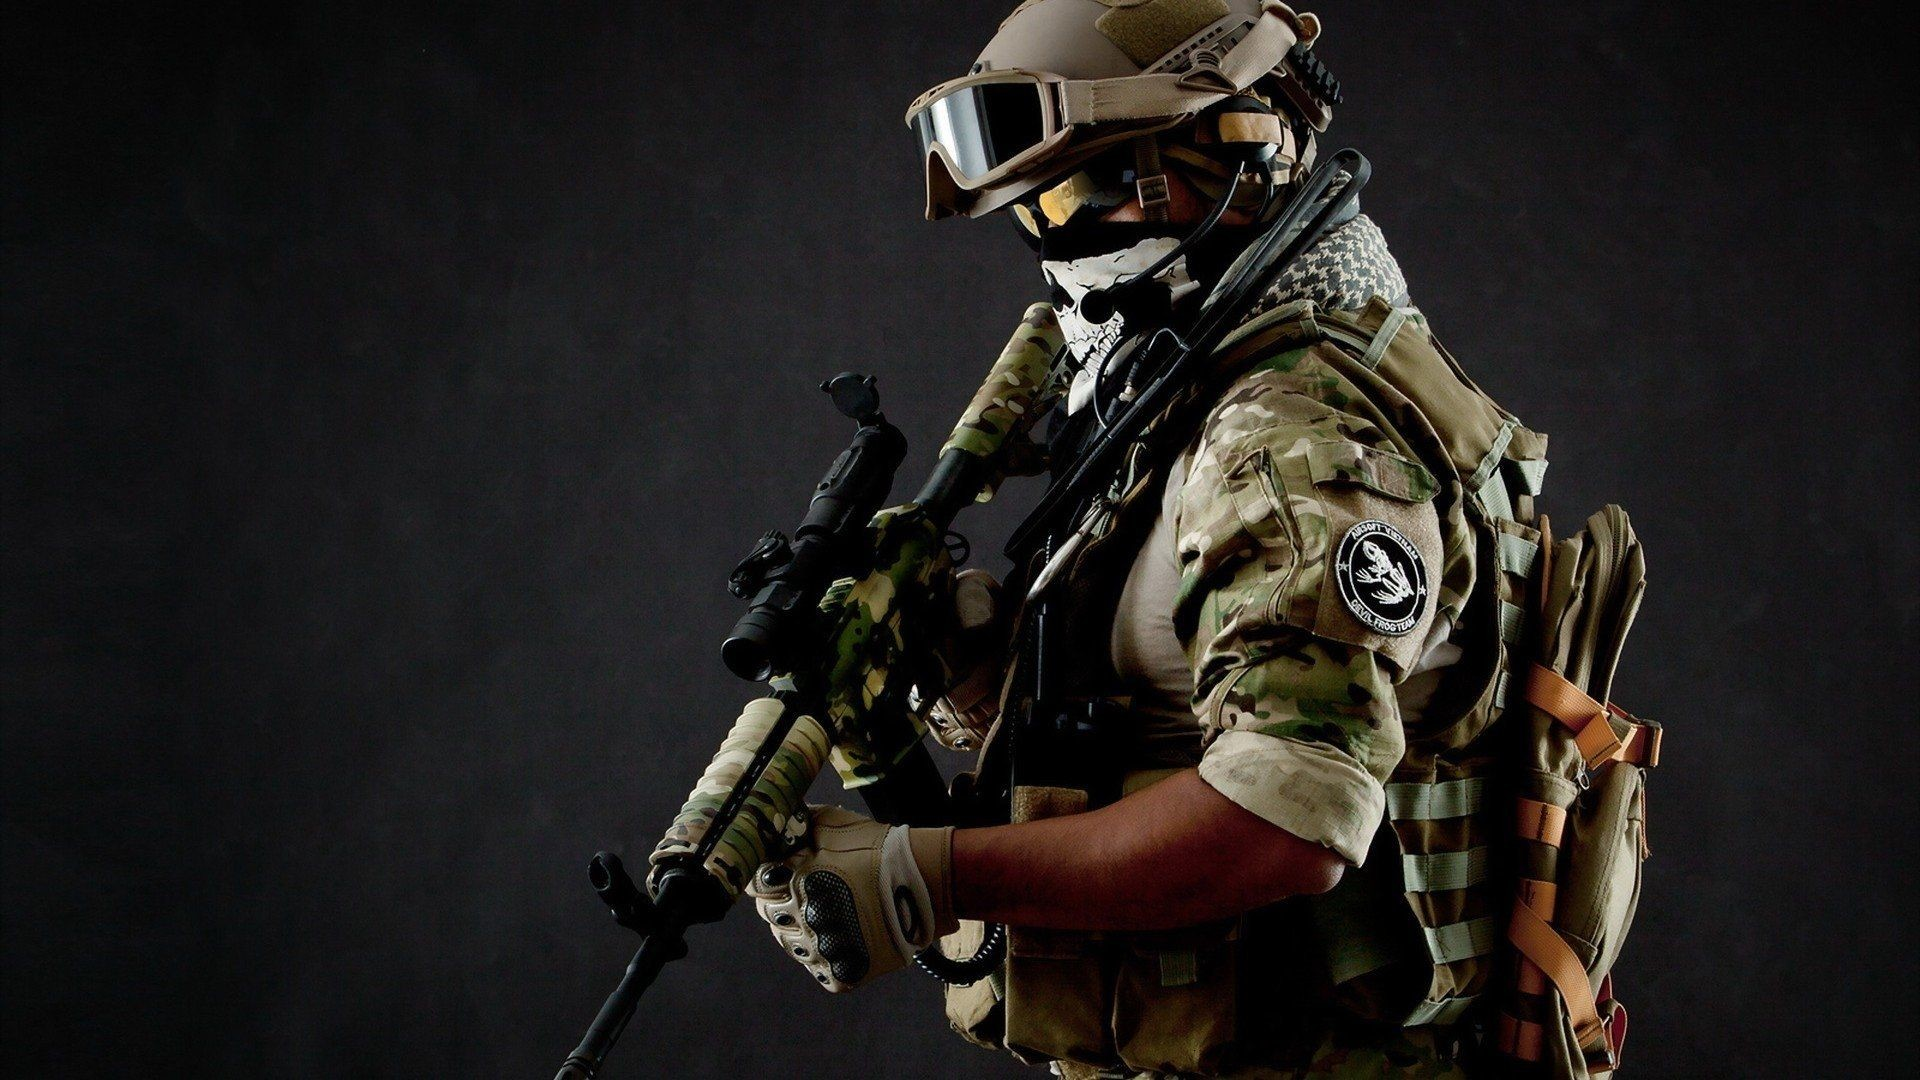 Res: 1920x1080, Military Soldier Wallpaper